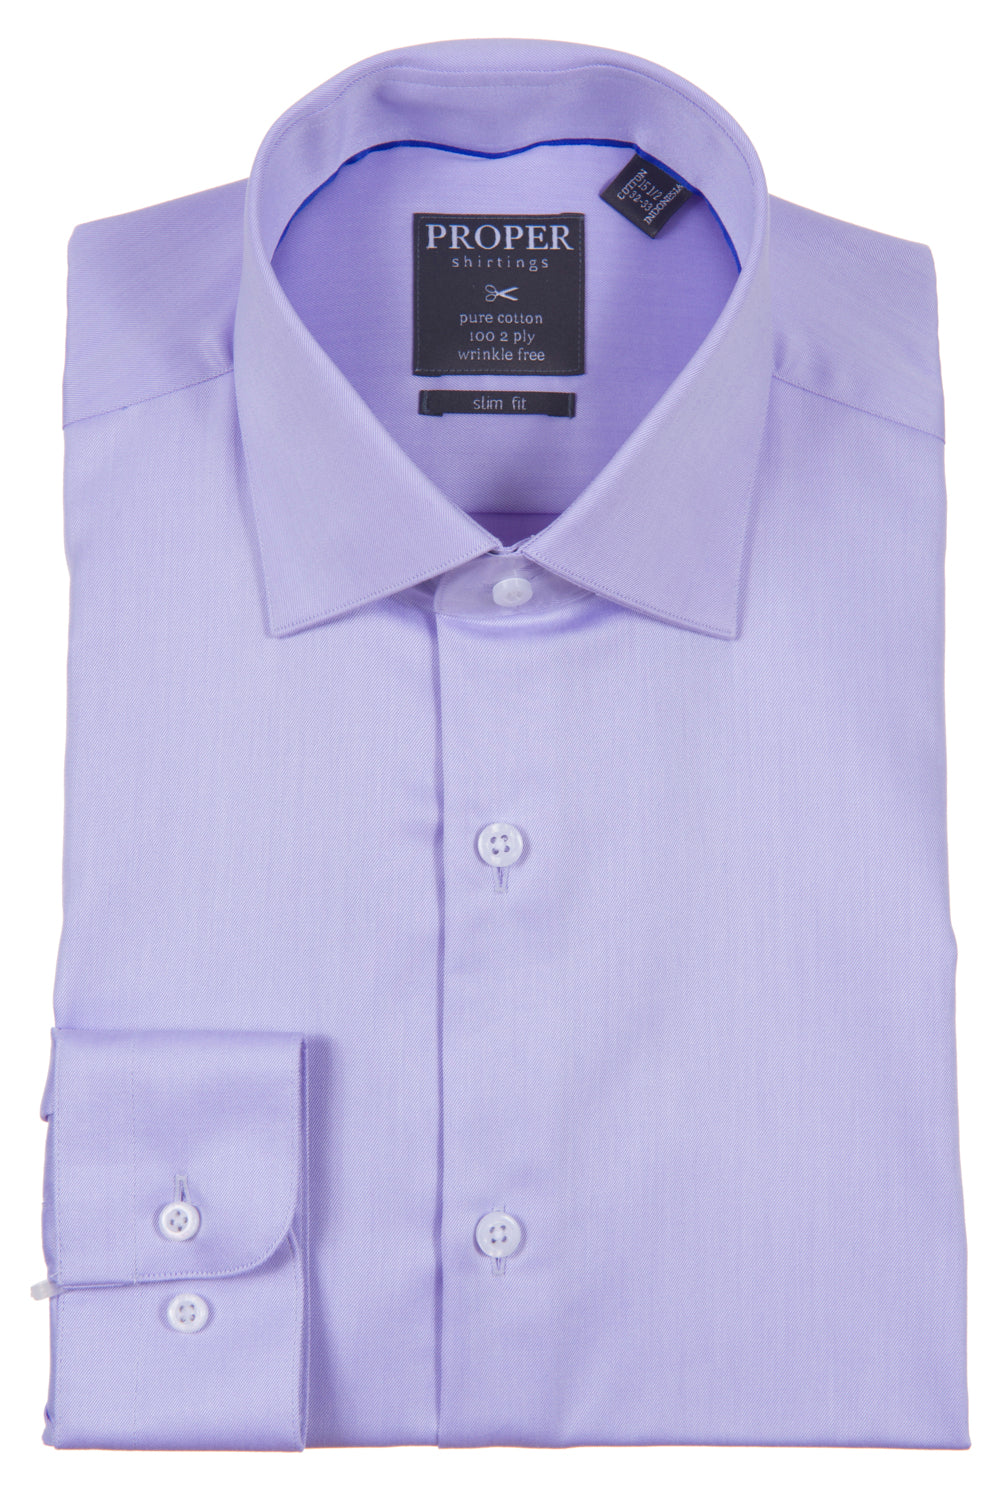 Proper Shirtings - White -100% Cotton - 100's 2-ply - Wrinkle Free - Dress Shirt - Slim Fit